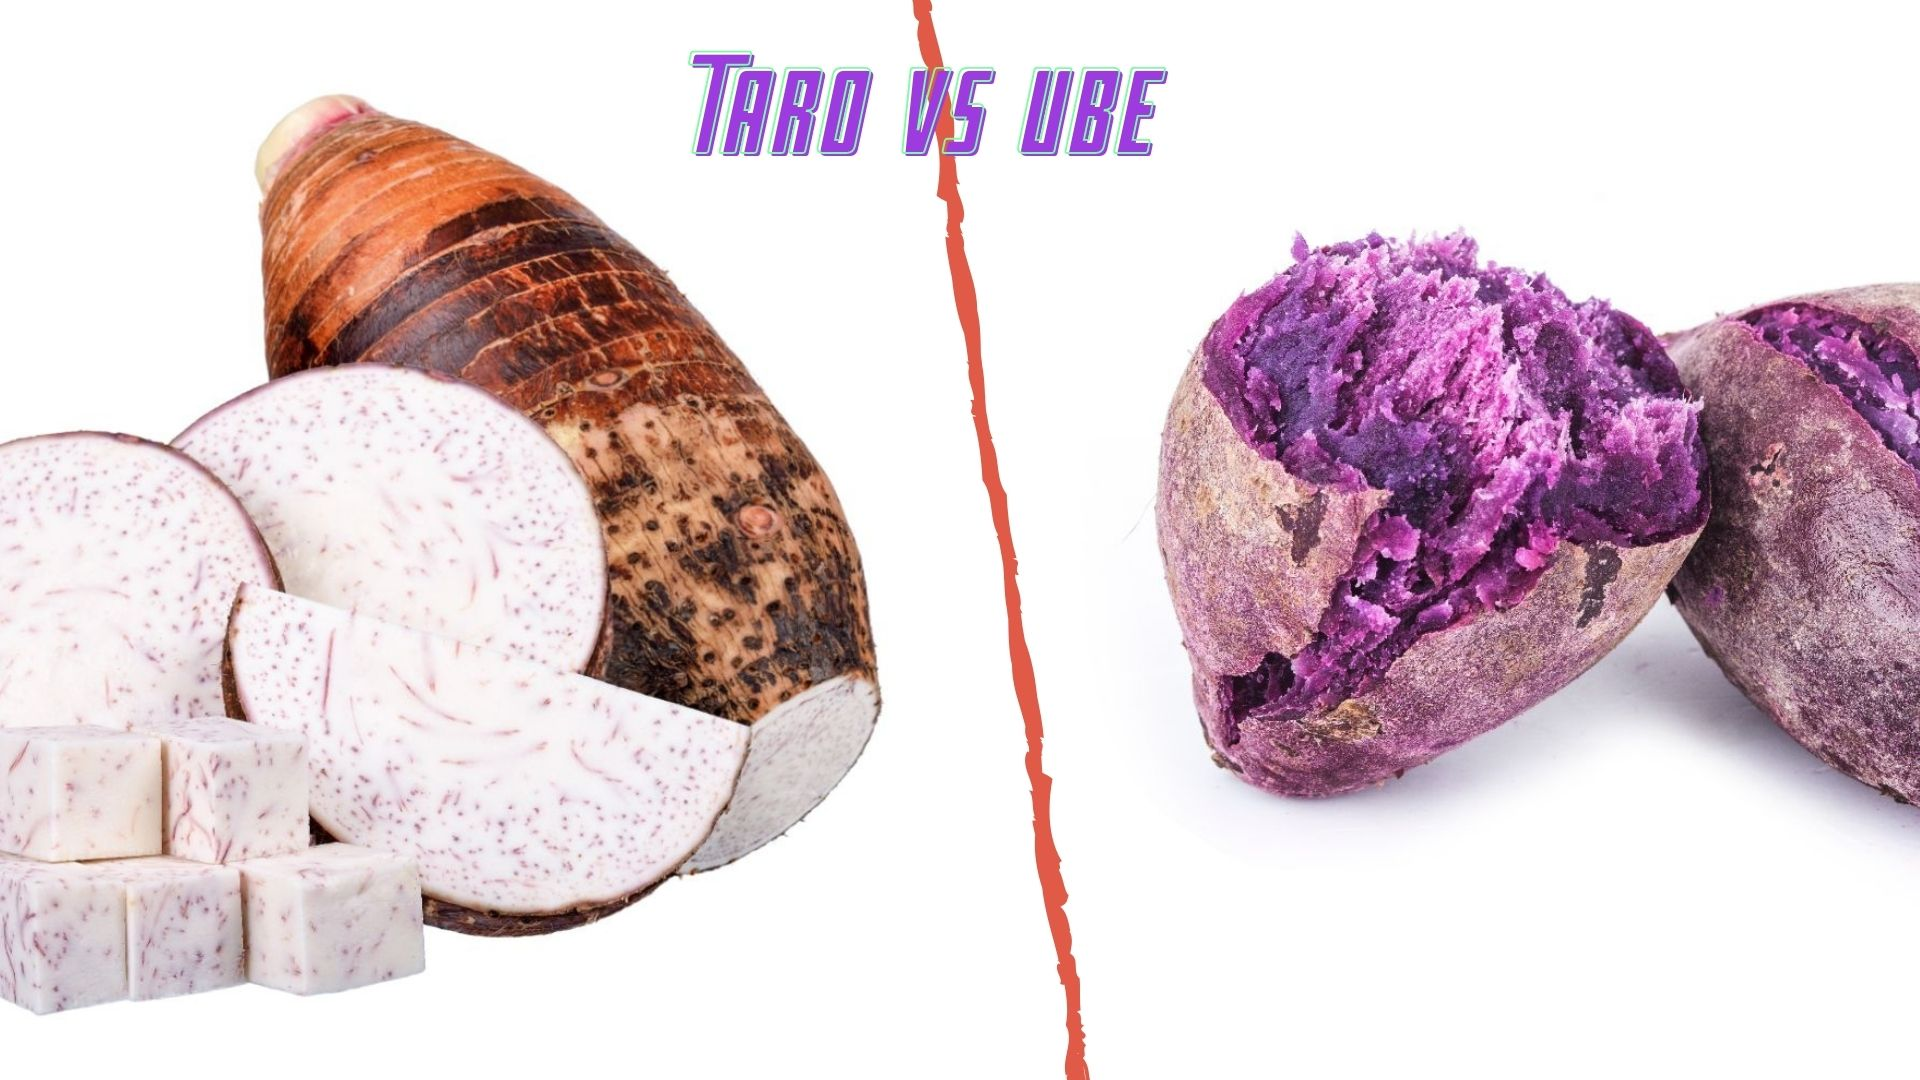 Taro vs Ube: What's the difference?